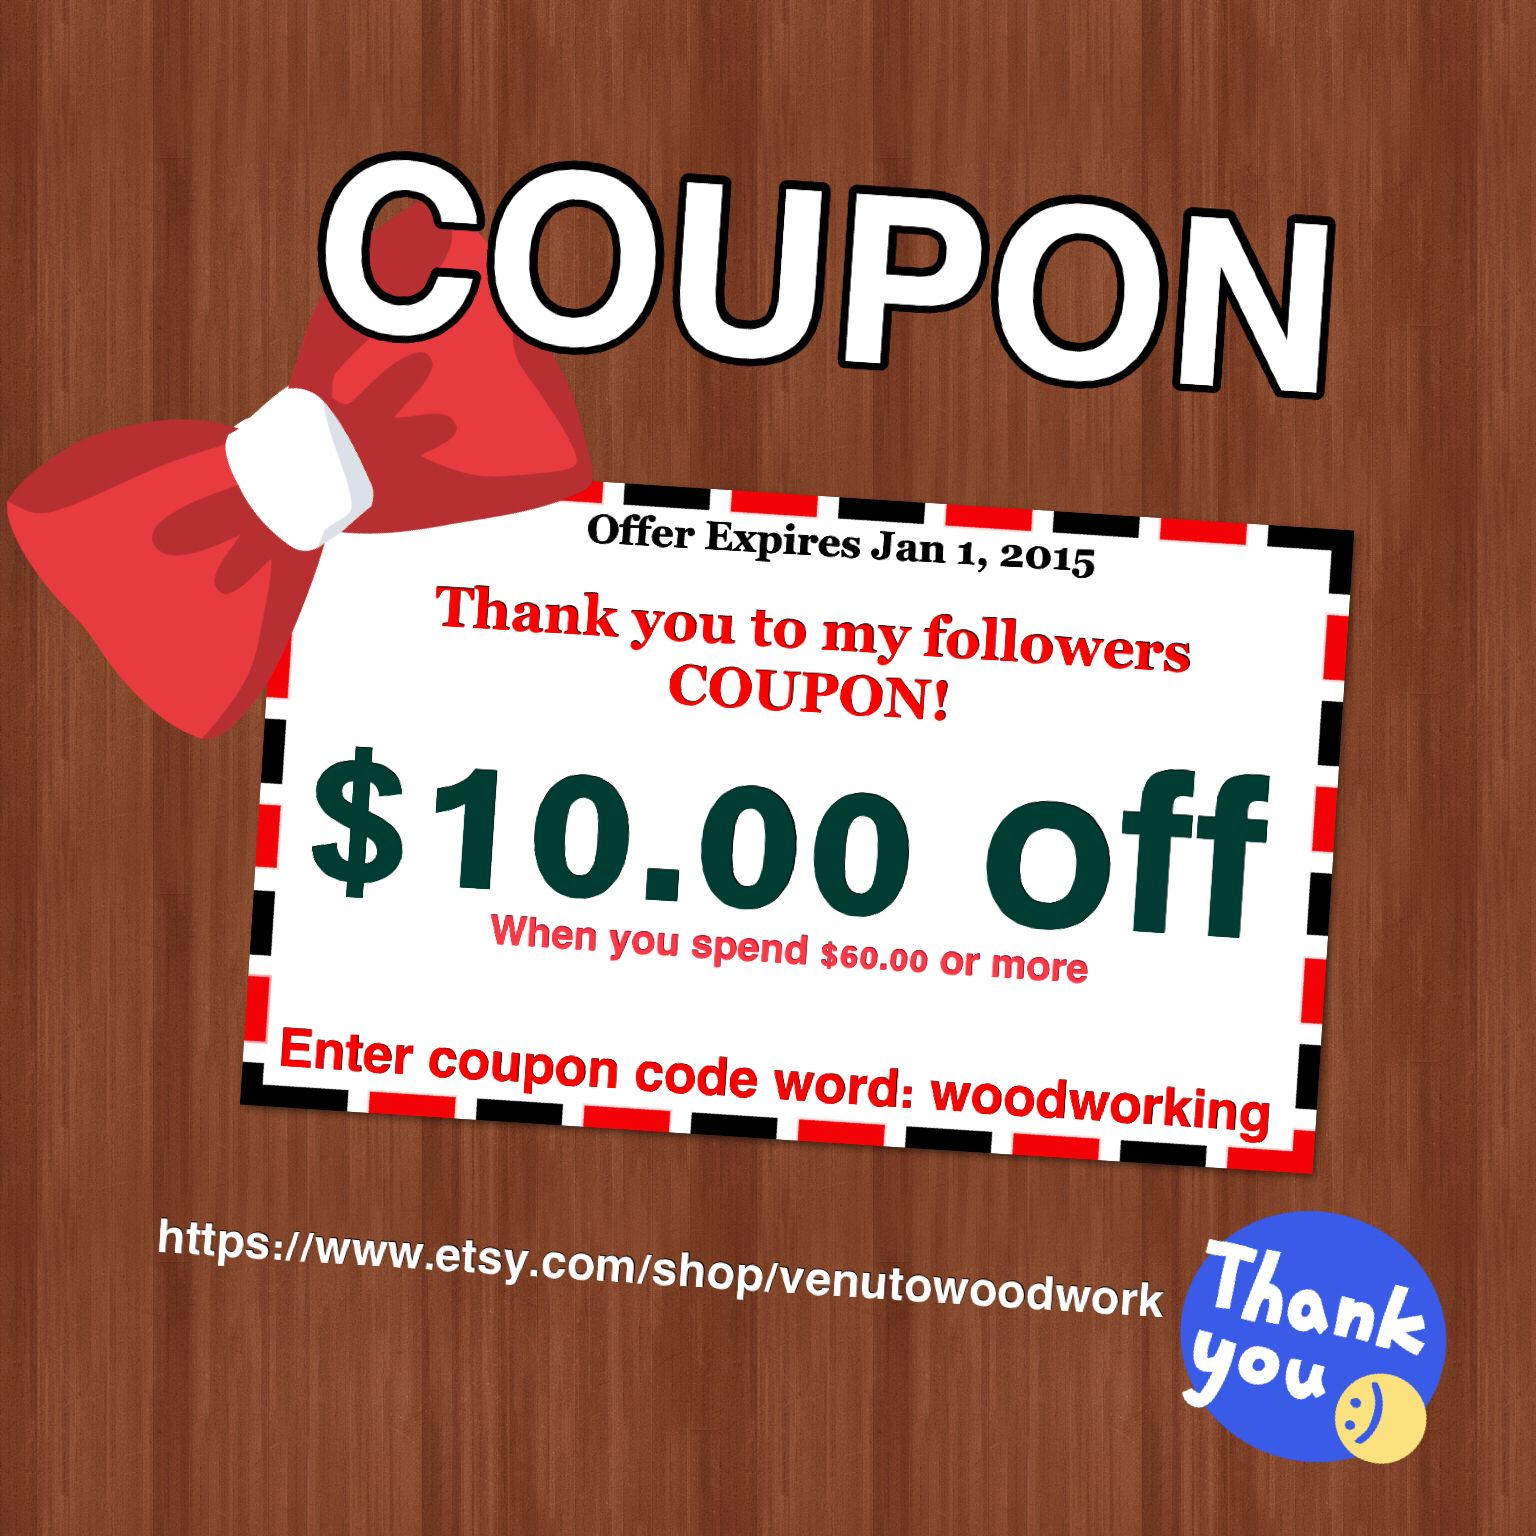 Etsy Store Coupon As A Thank You To Followers The Offer Expires Jan 1 2015 Enter Coupon Code Word Woodworking Receive 10 Words Wood Jewellery Unique Gifts